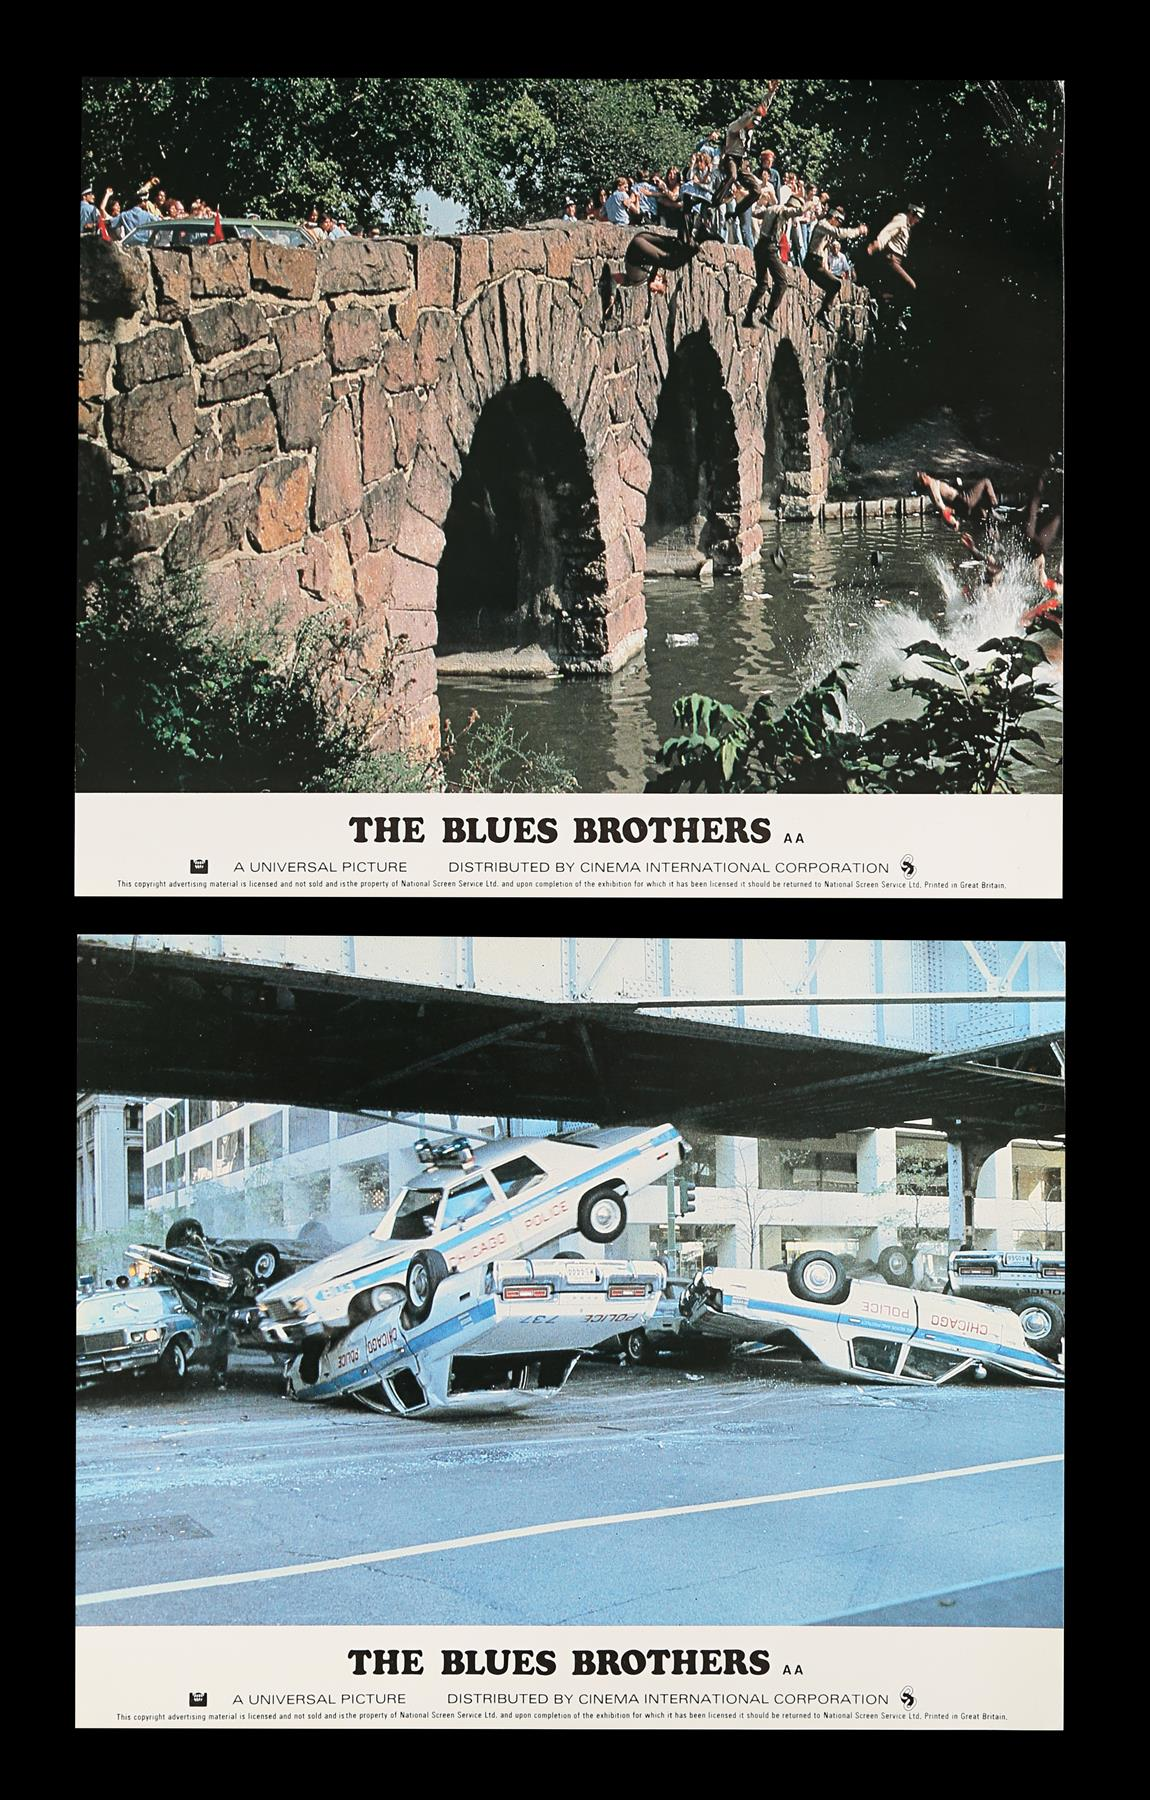 THE BLUES BROTHERS (1980) - Eight British Front of House Lobby Cards, 1980 - Image 3 of 5